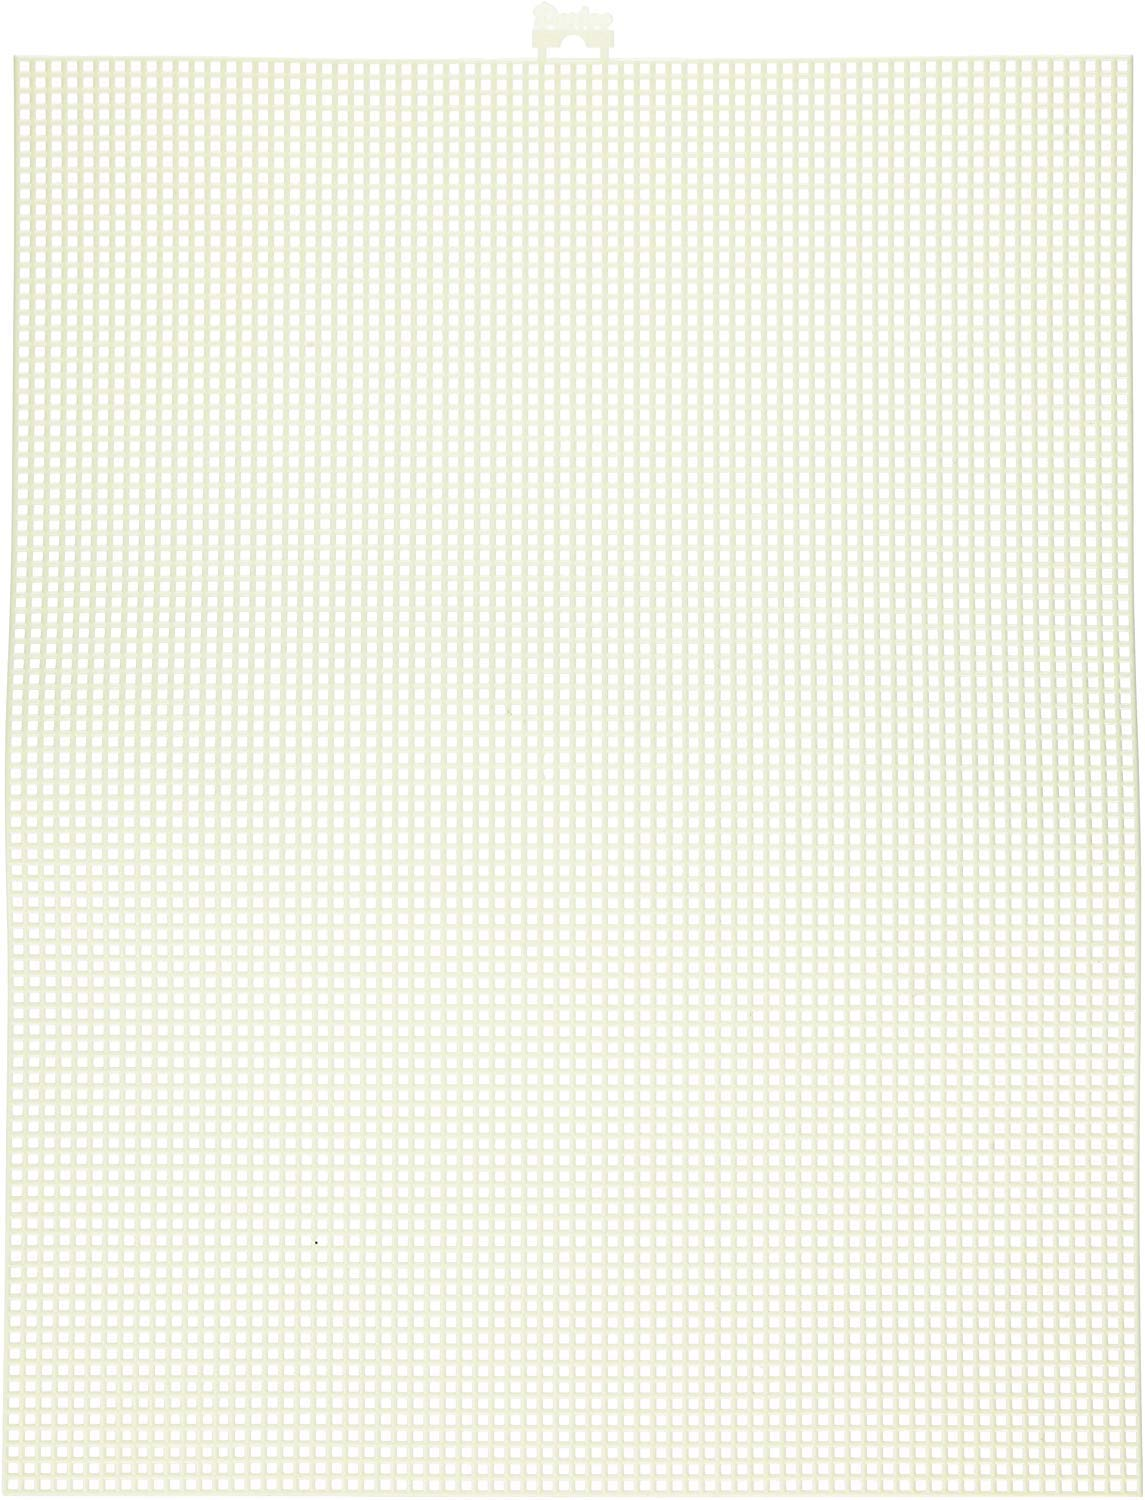 """Darice 7 Mesh Ivory Plastic Canvas – Create a Variety of Fun Plastic Canvas Crafts Including Bookmarks, Picture Frames, Pins and More – 1 Sheet, 7 Holes Per Inch, 10.5""""x13.5"""" Per Sheet"""